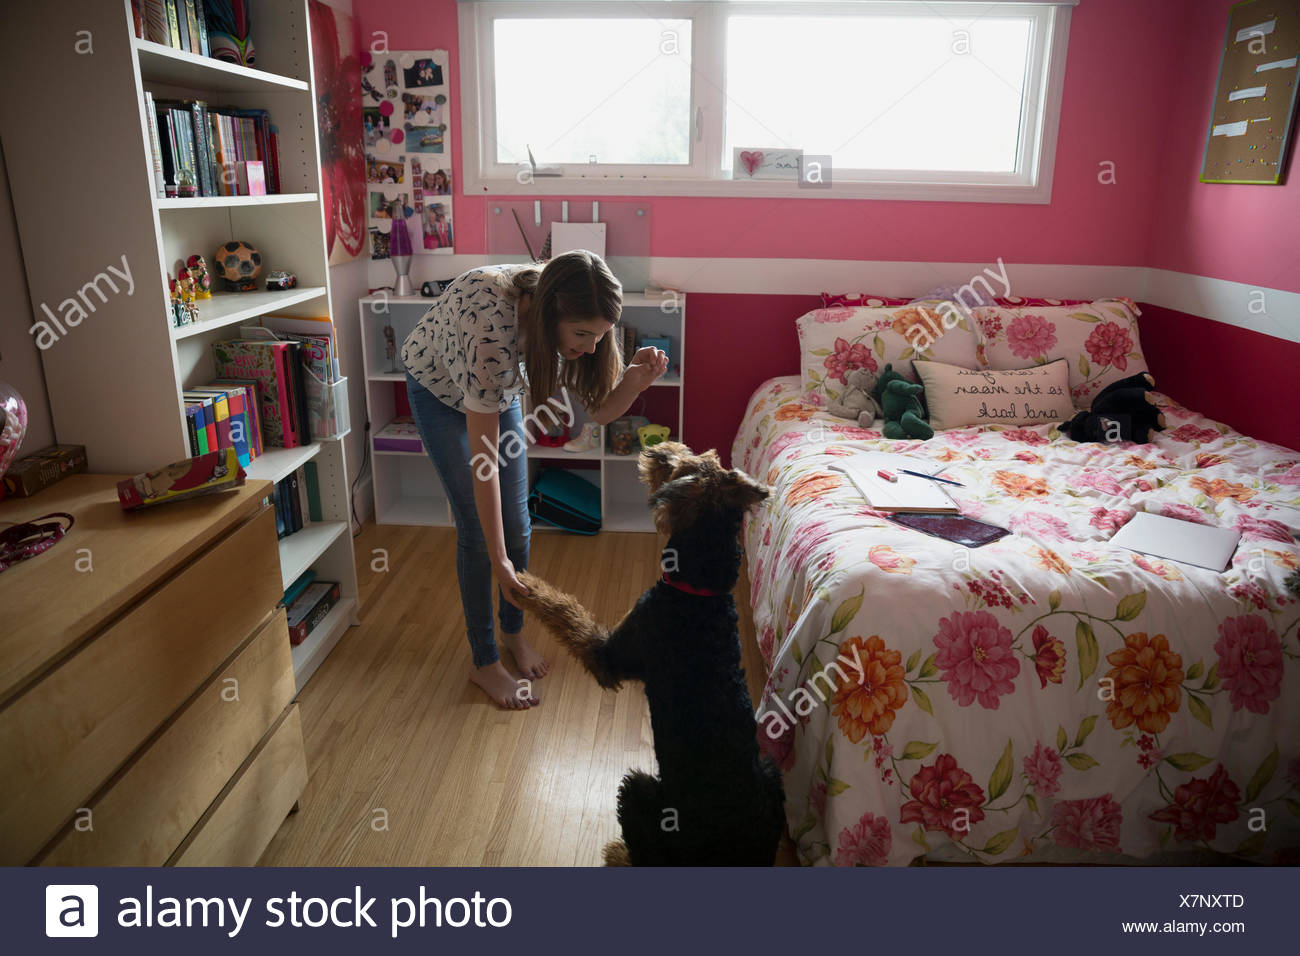 Girl holding treat and shaking dog paw bedroom - Stock Image